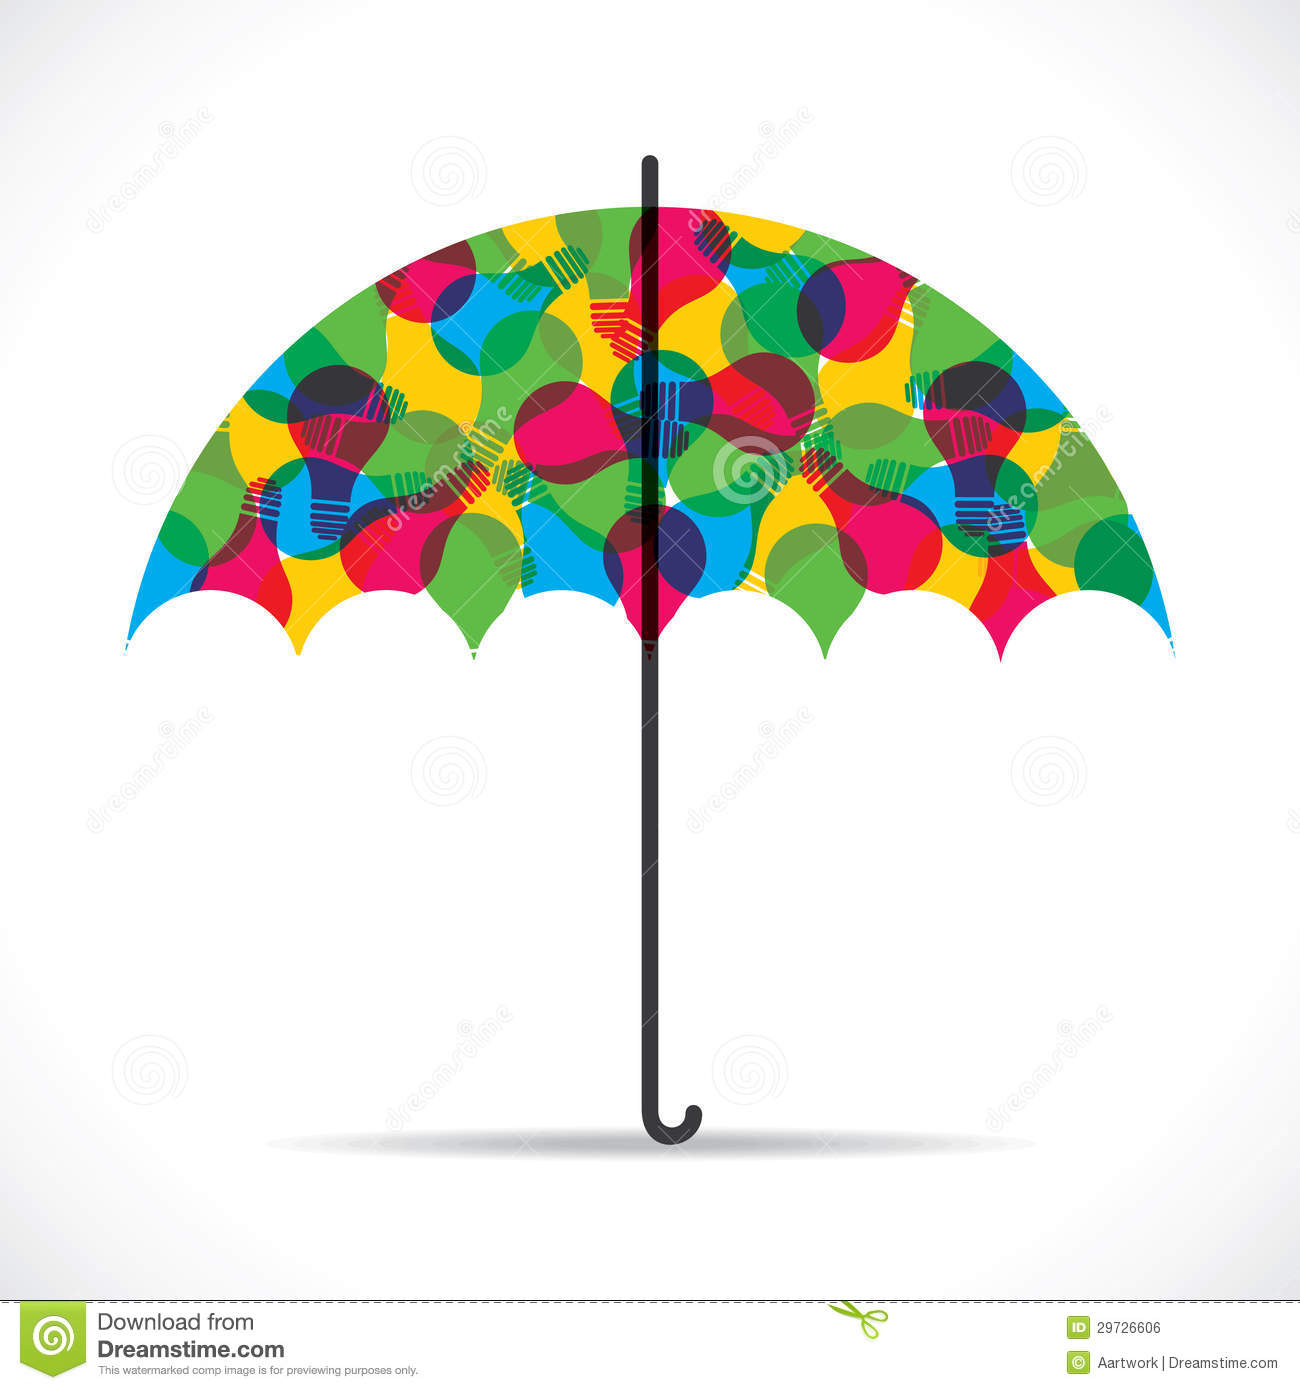 Abstract Umbrella Royalty Free Stock Image - Image: 29726606